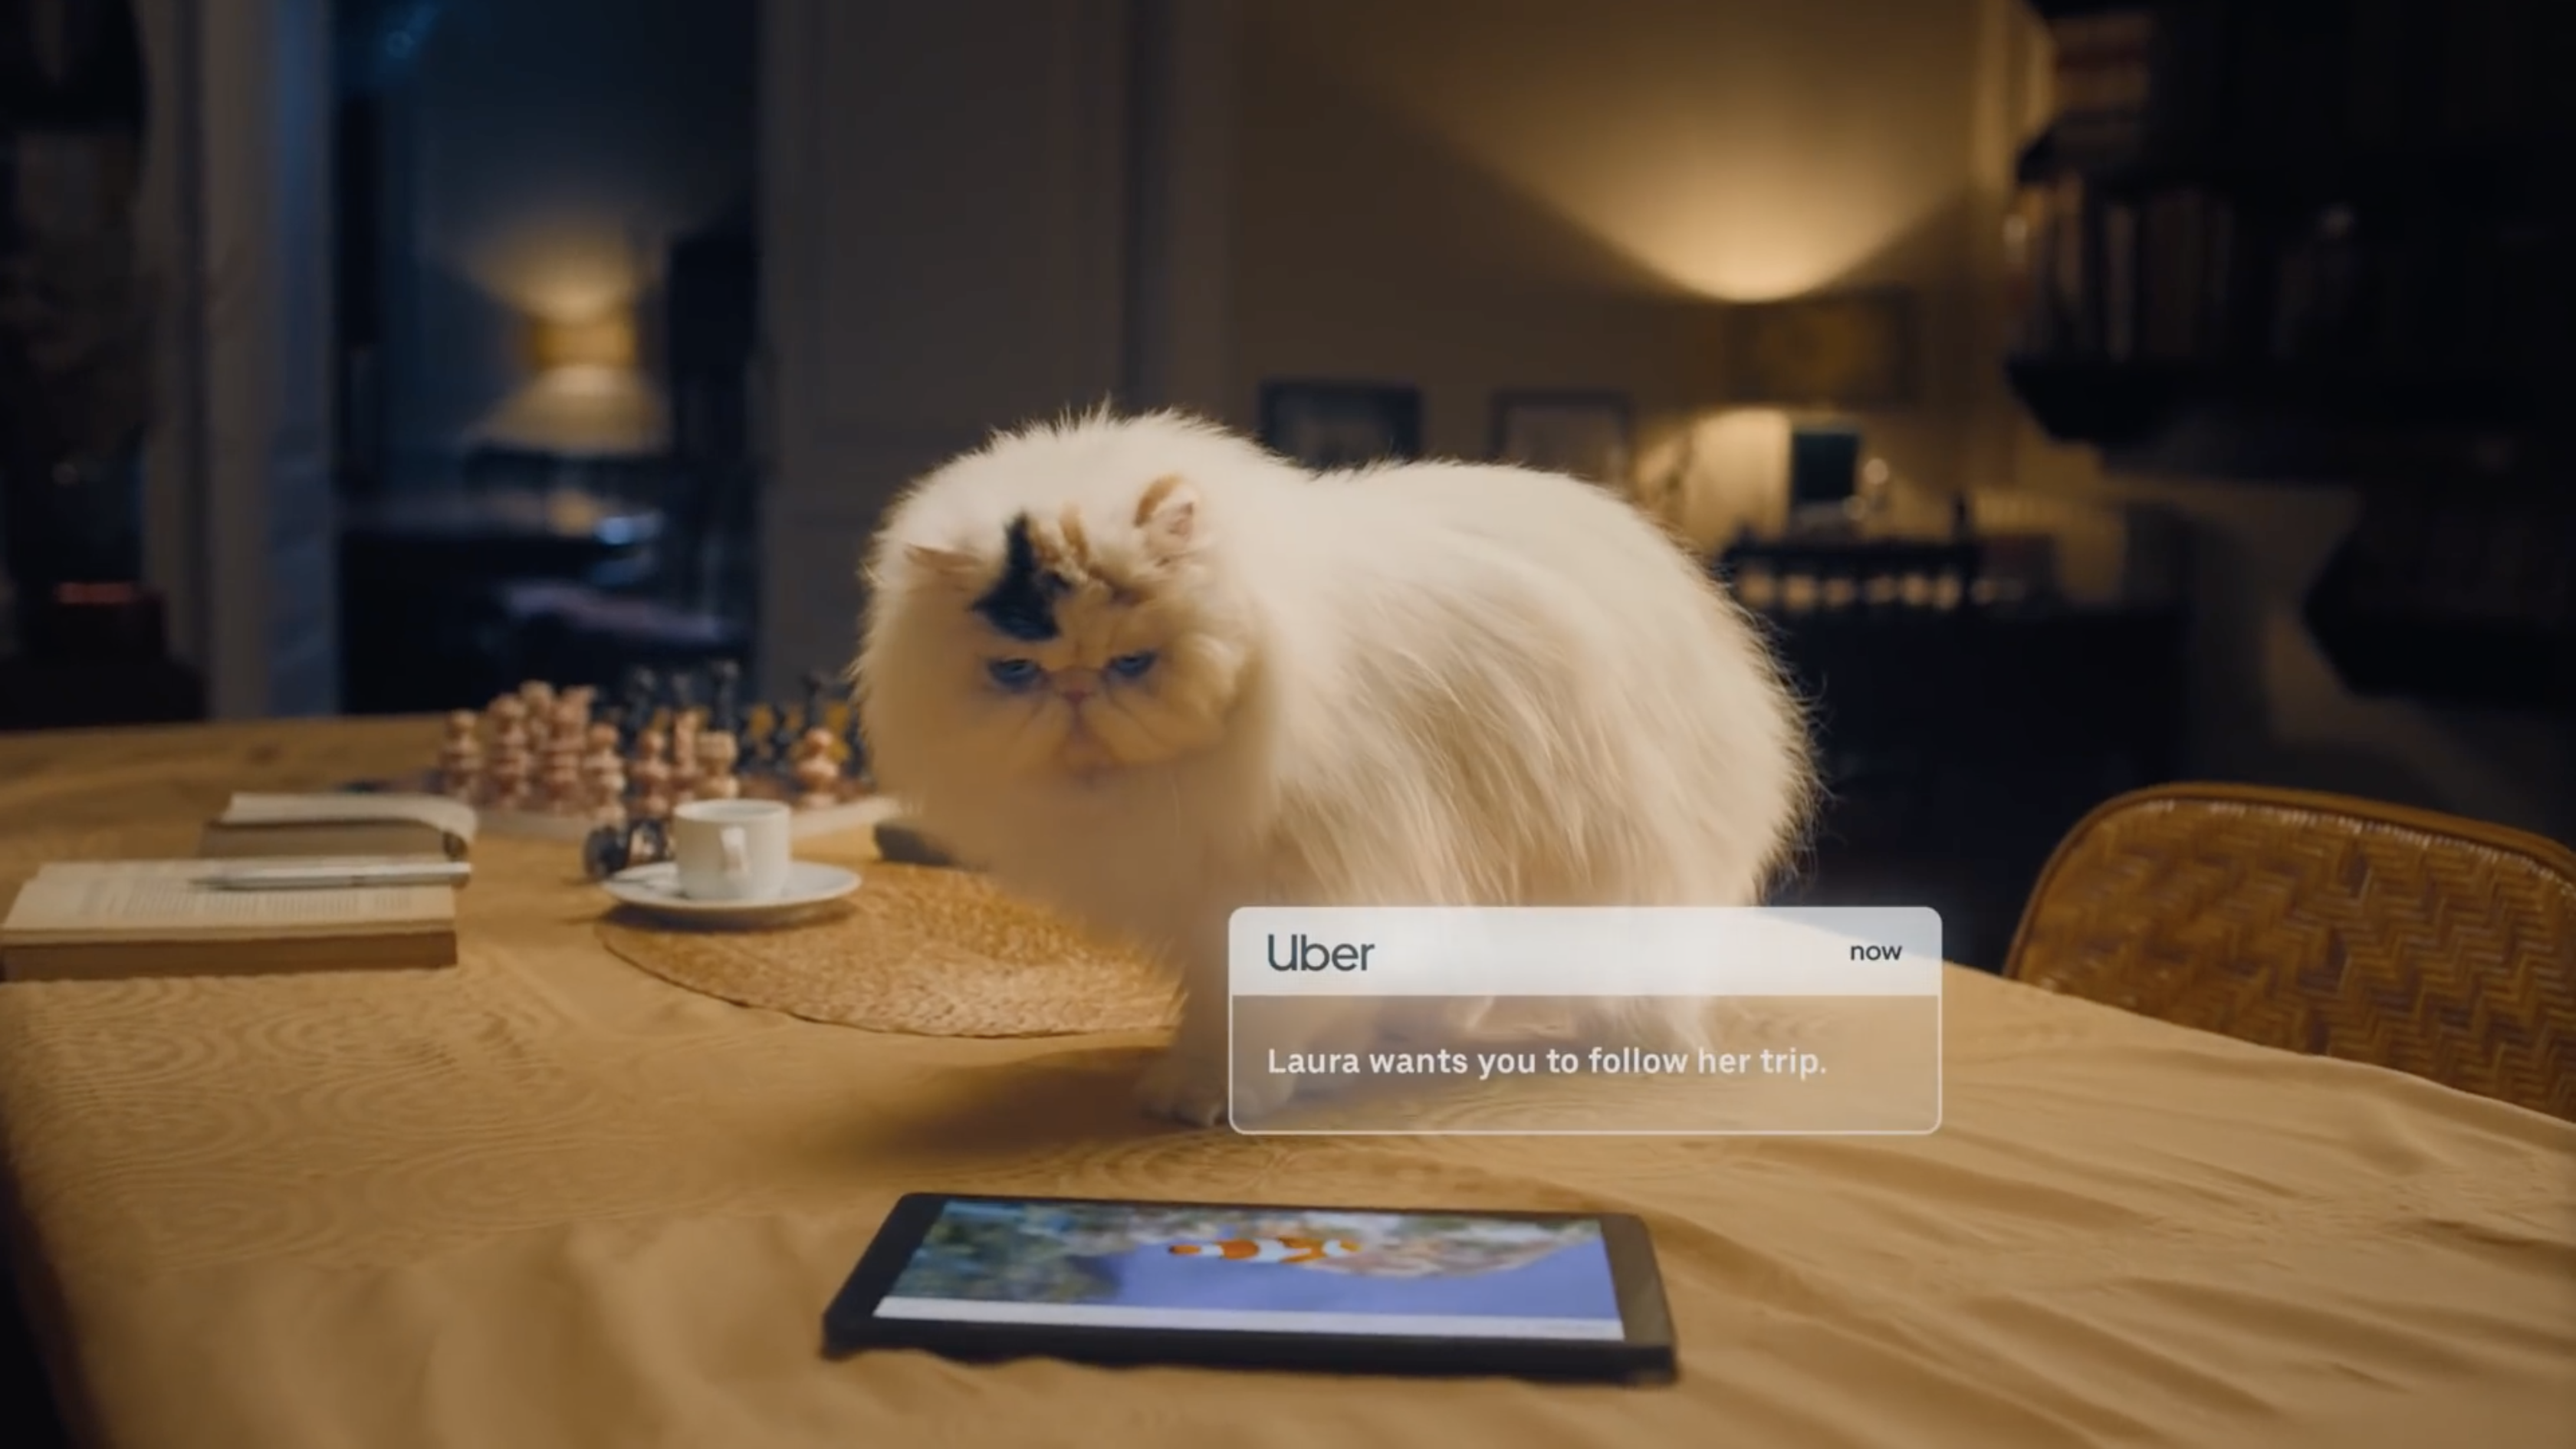 Uber – Safety Never Stops